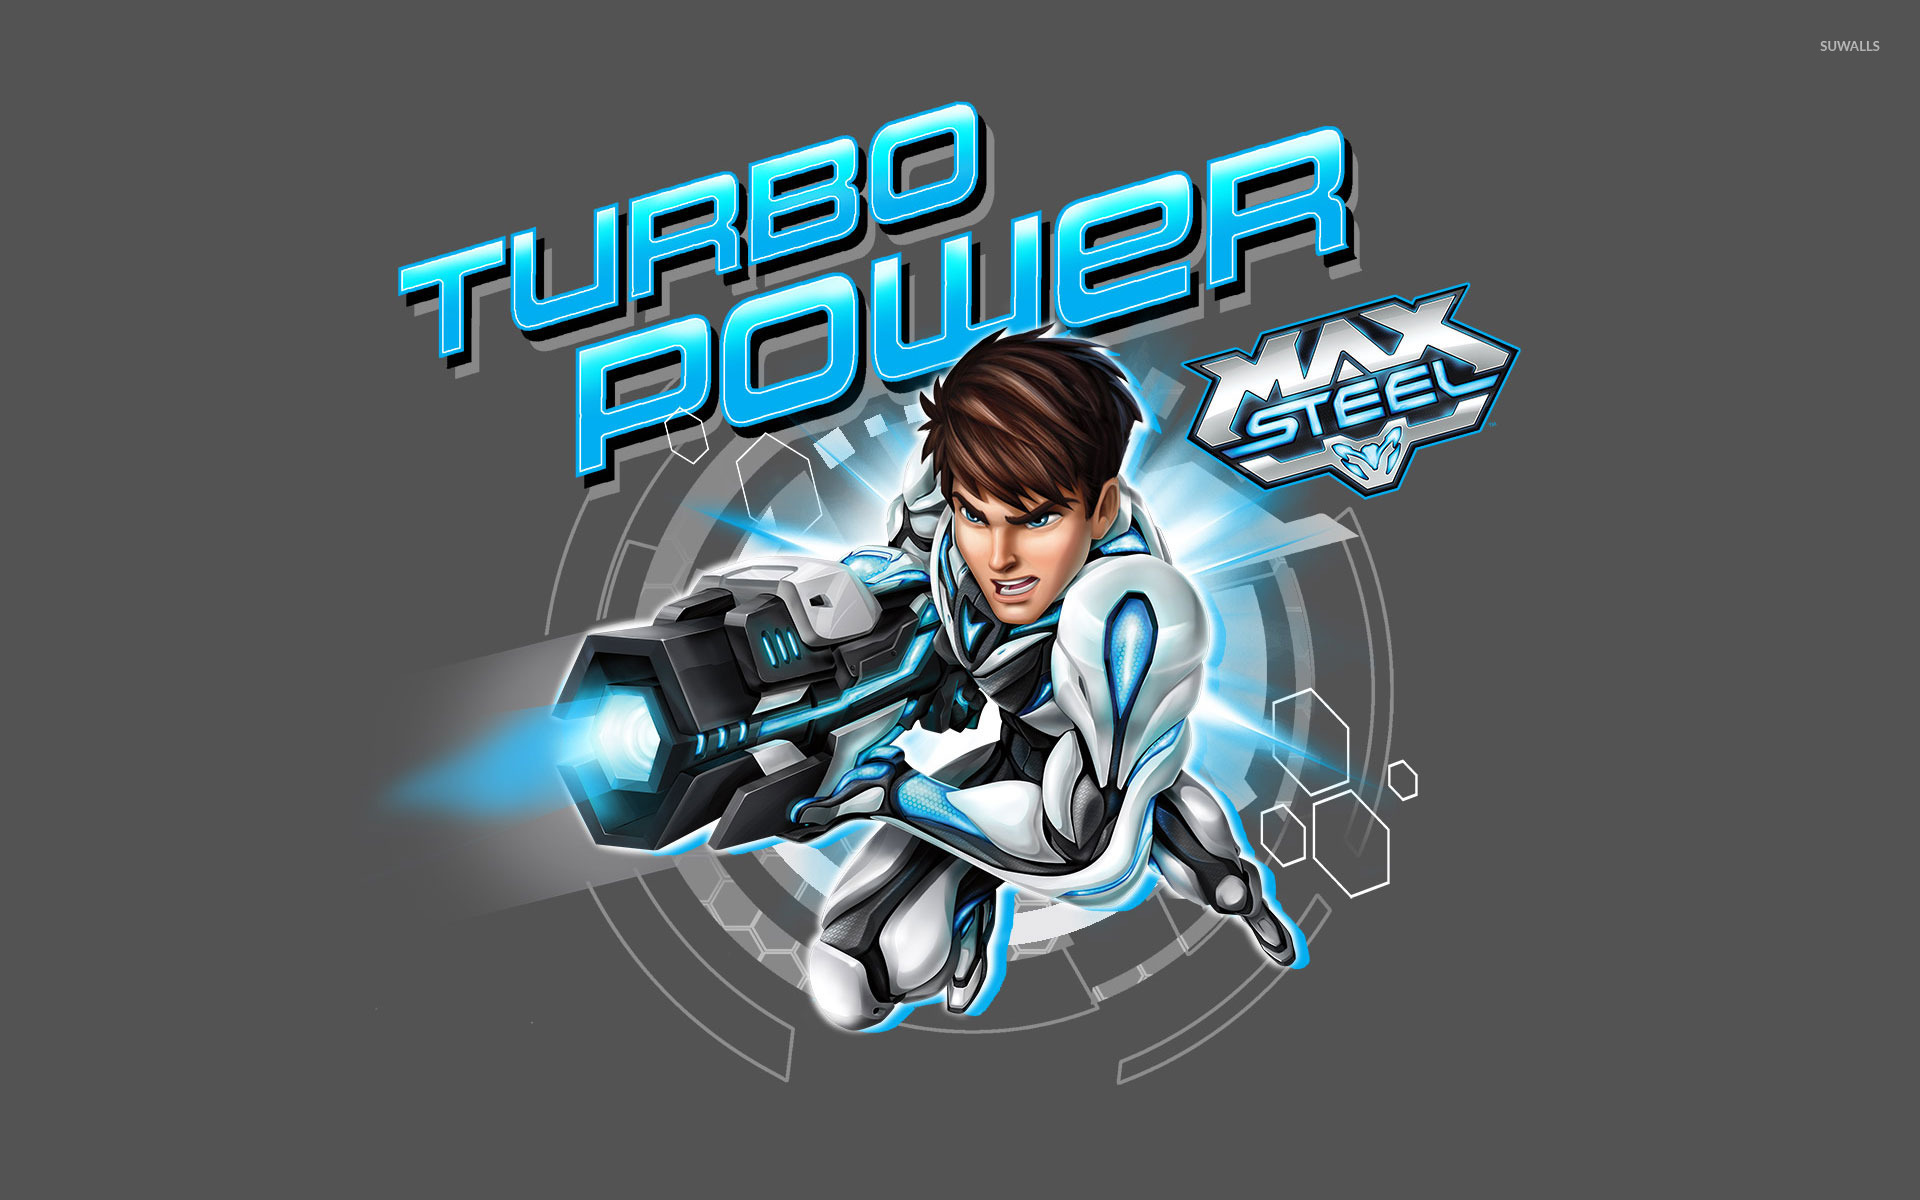 max steel 2 wallpaper game wallpapers 21081